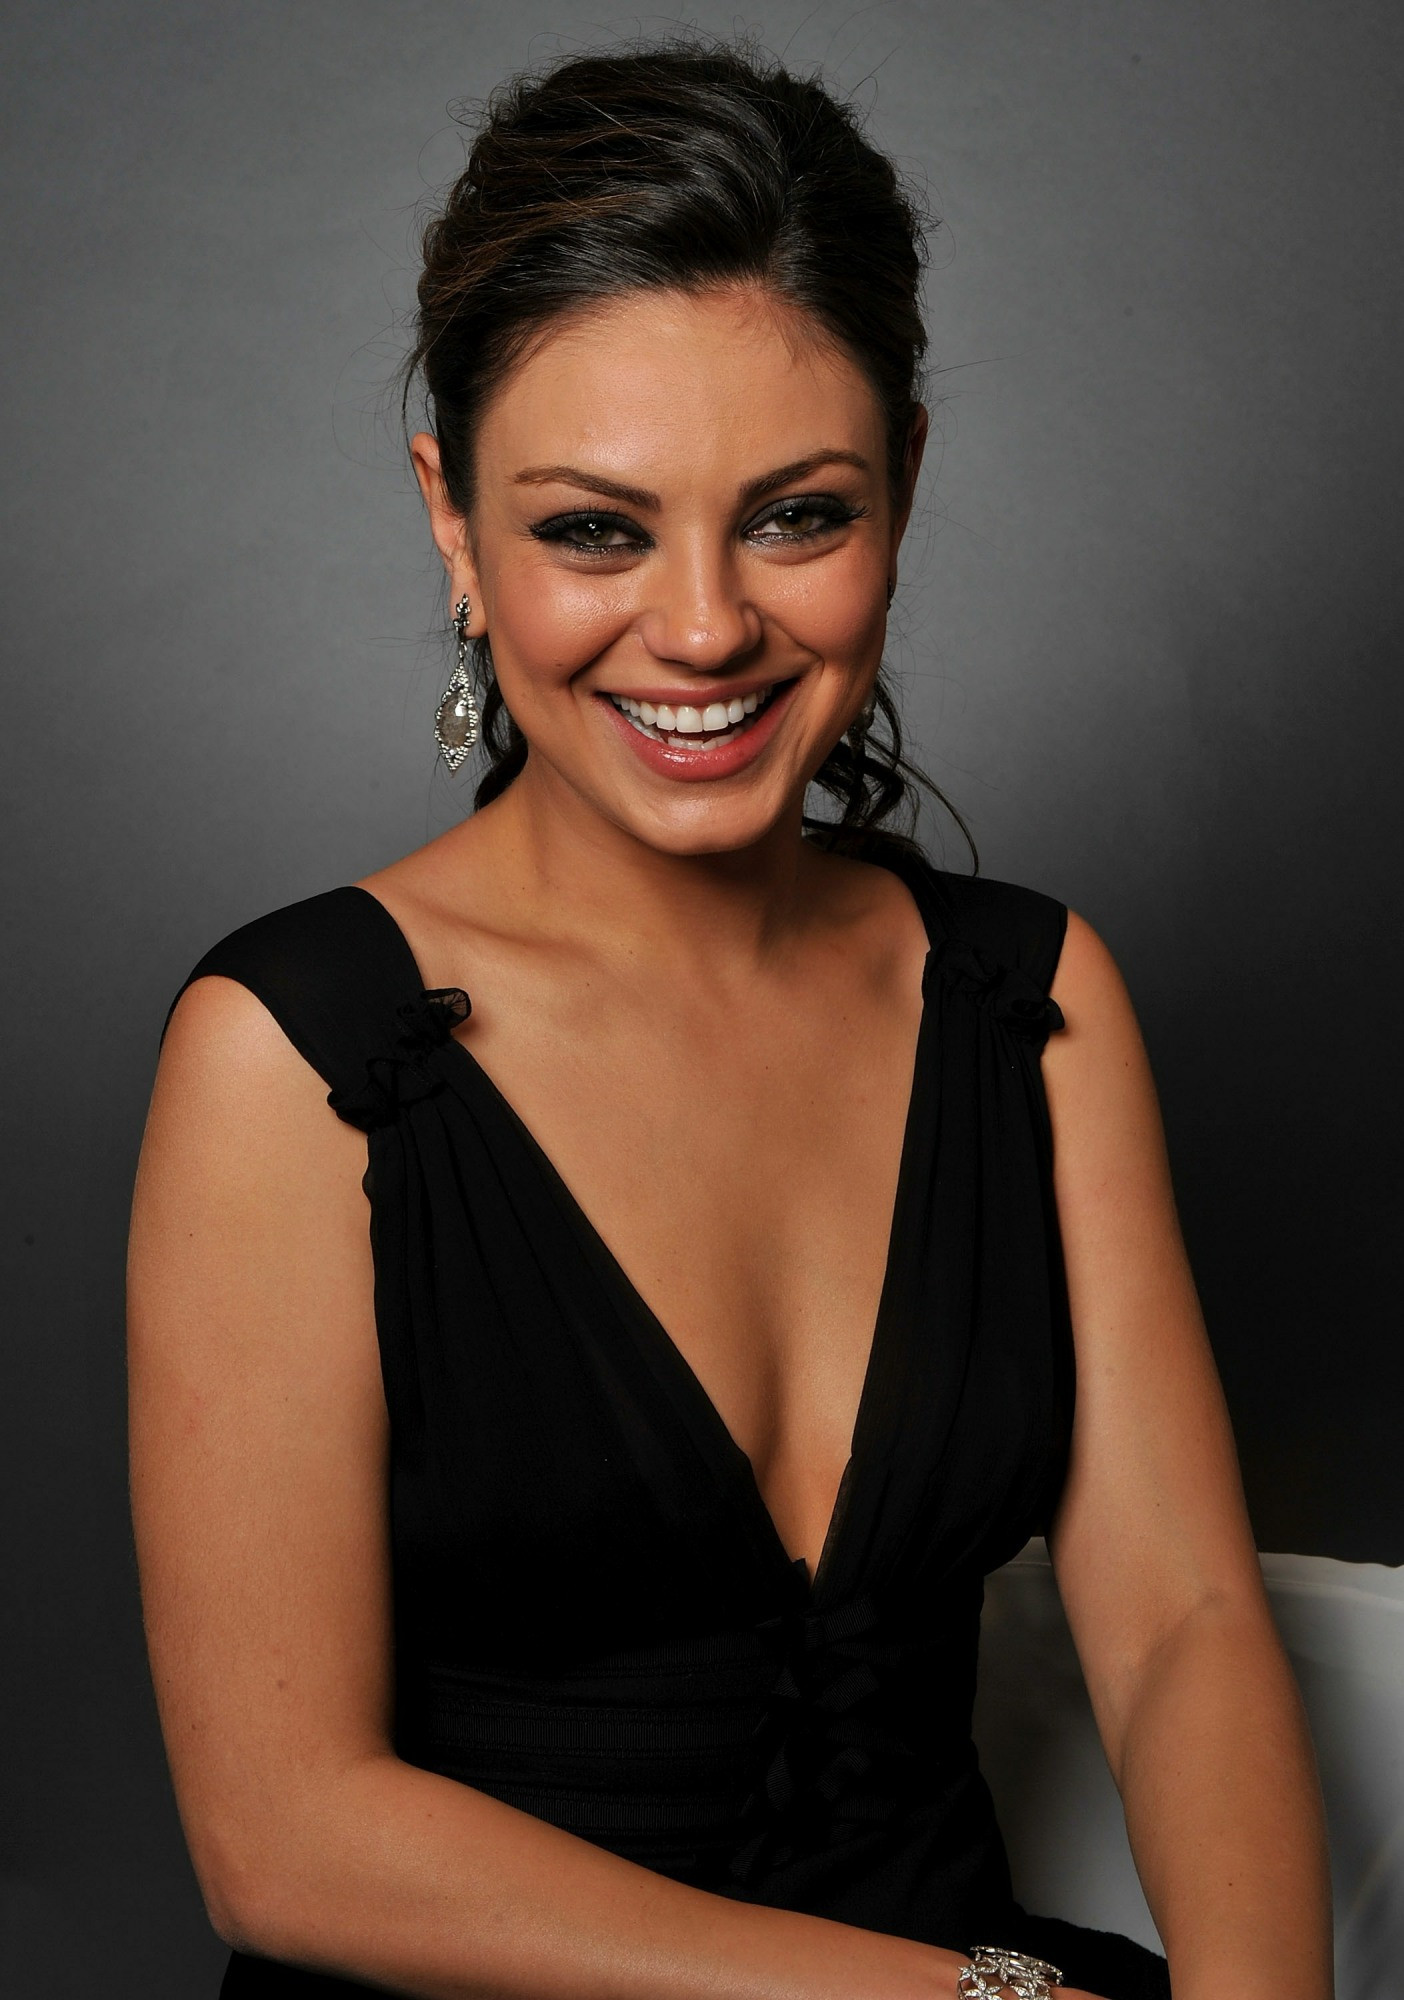 Brunette Stunner Mila Kunis Displaying Her Cleavage in a